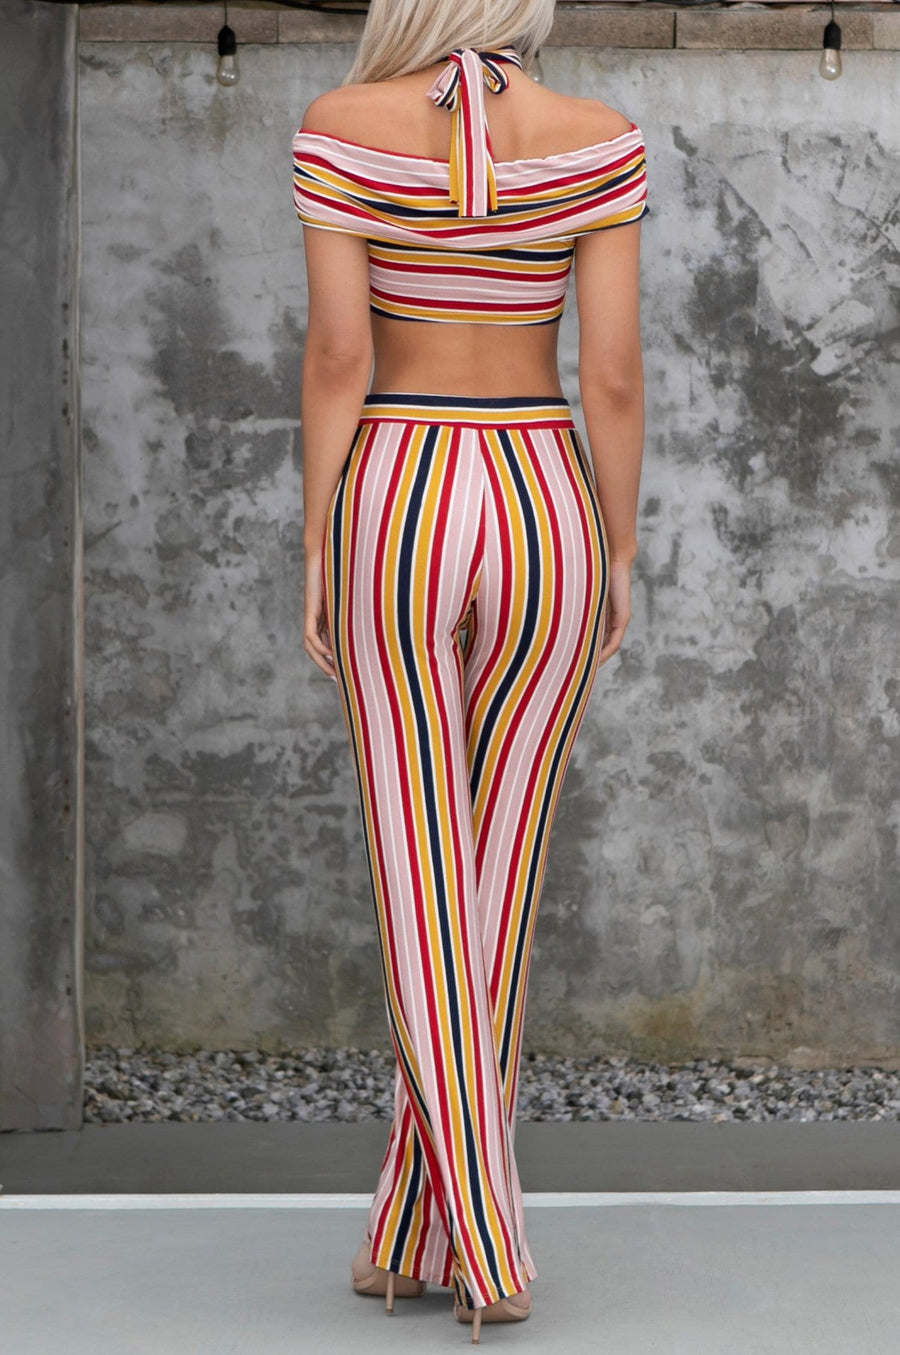 'Zahara' Striped Crop Top & Pants Set